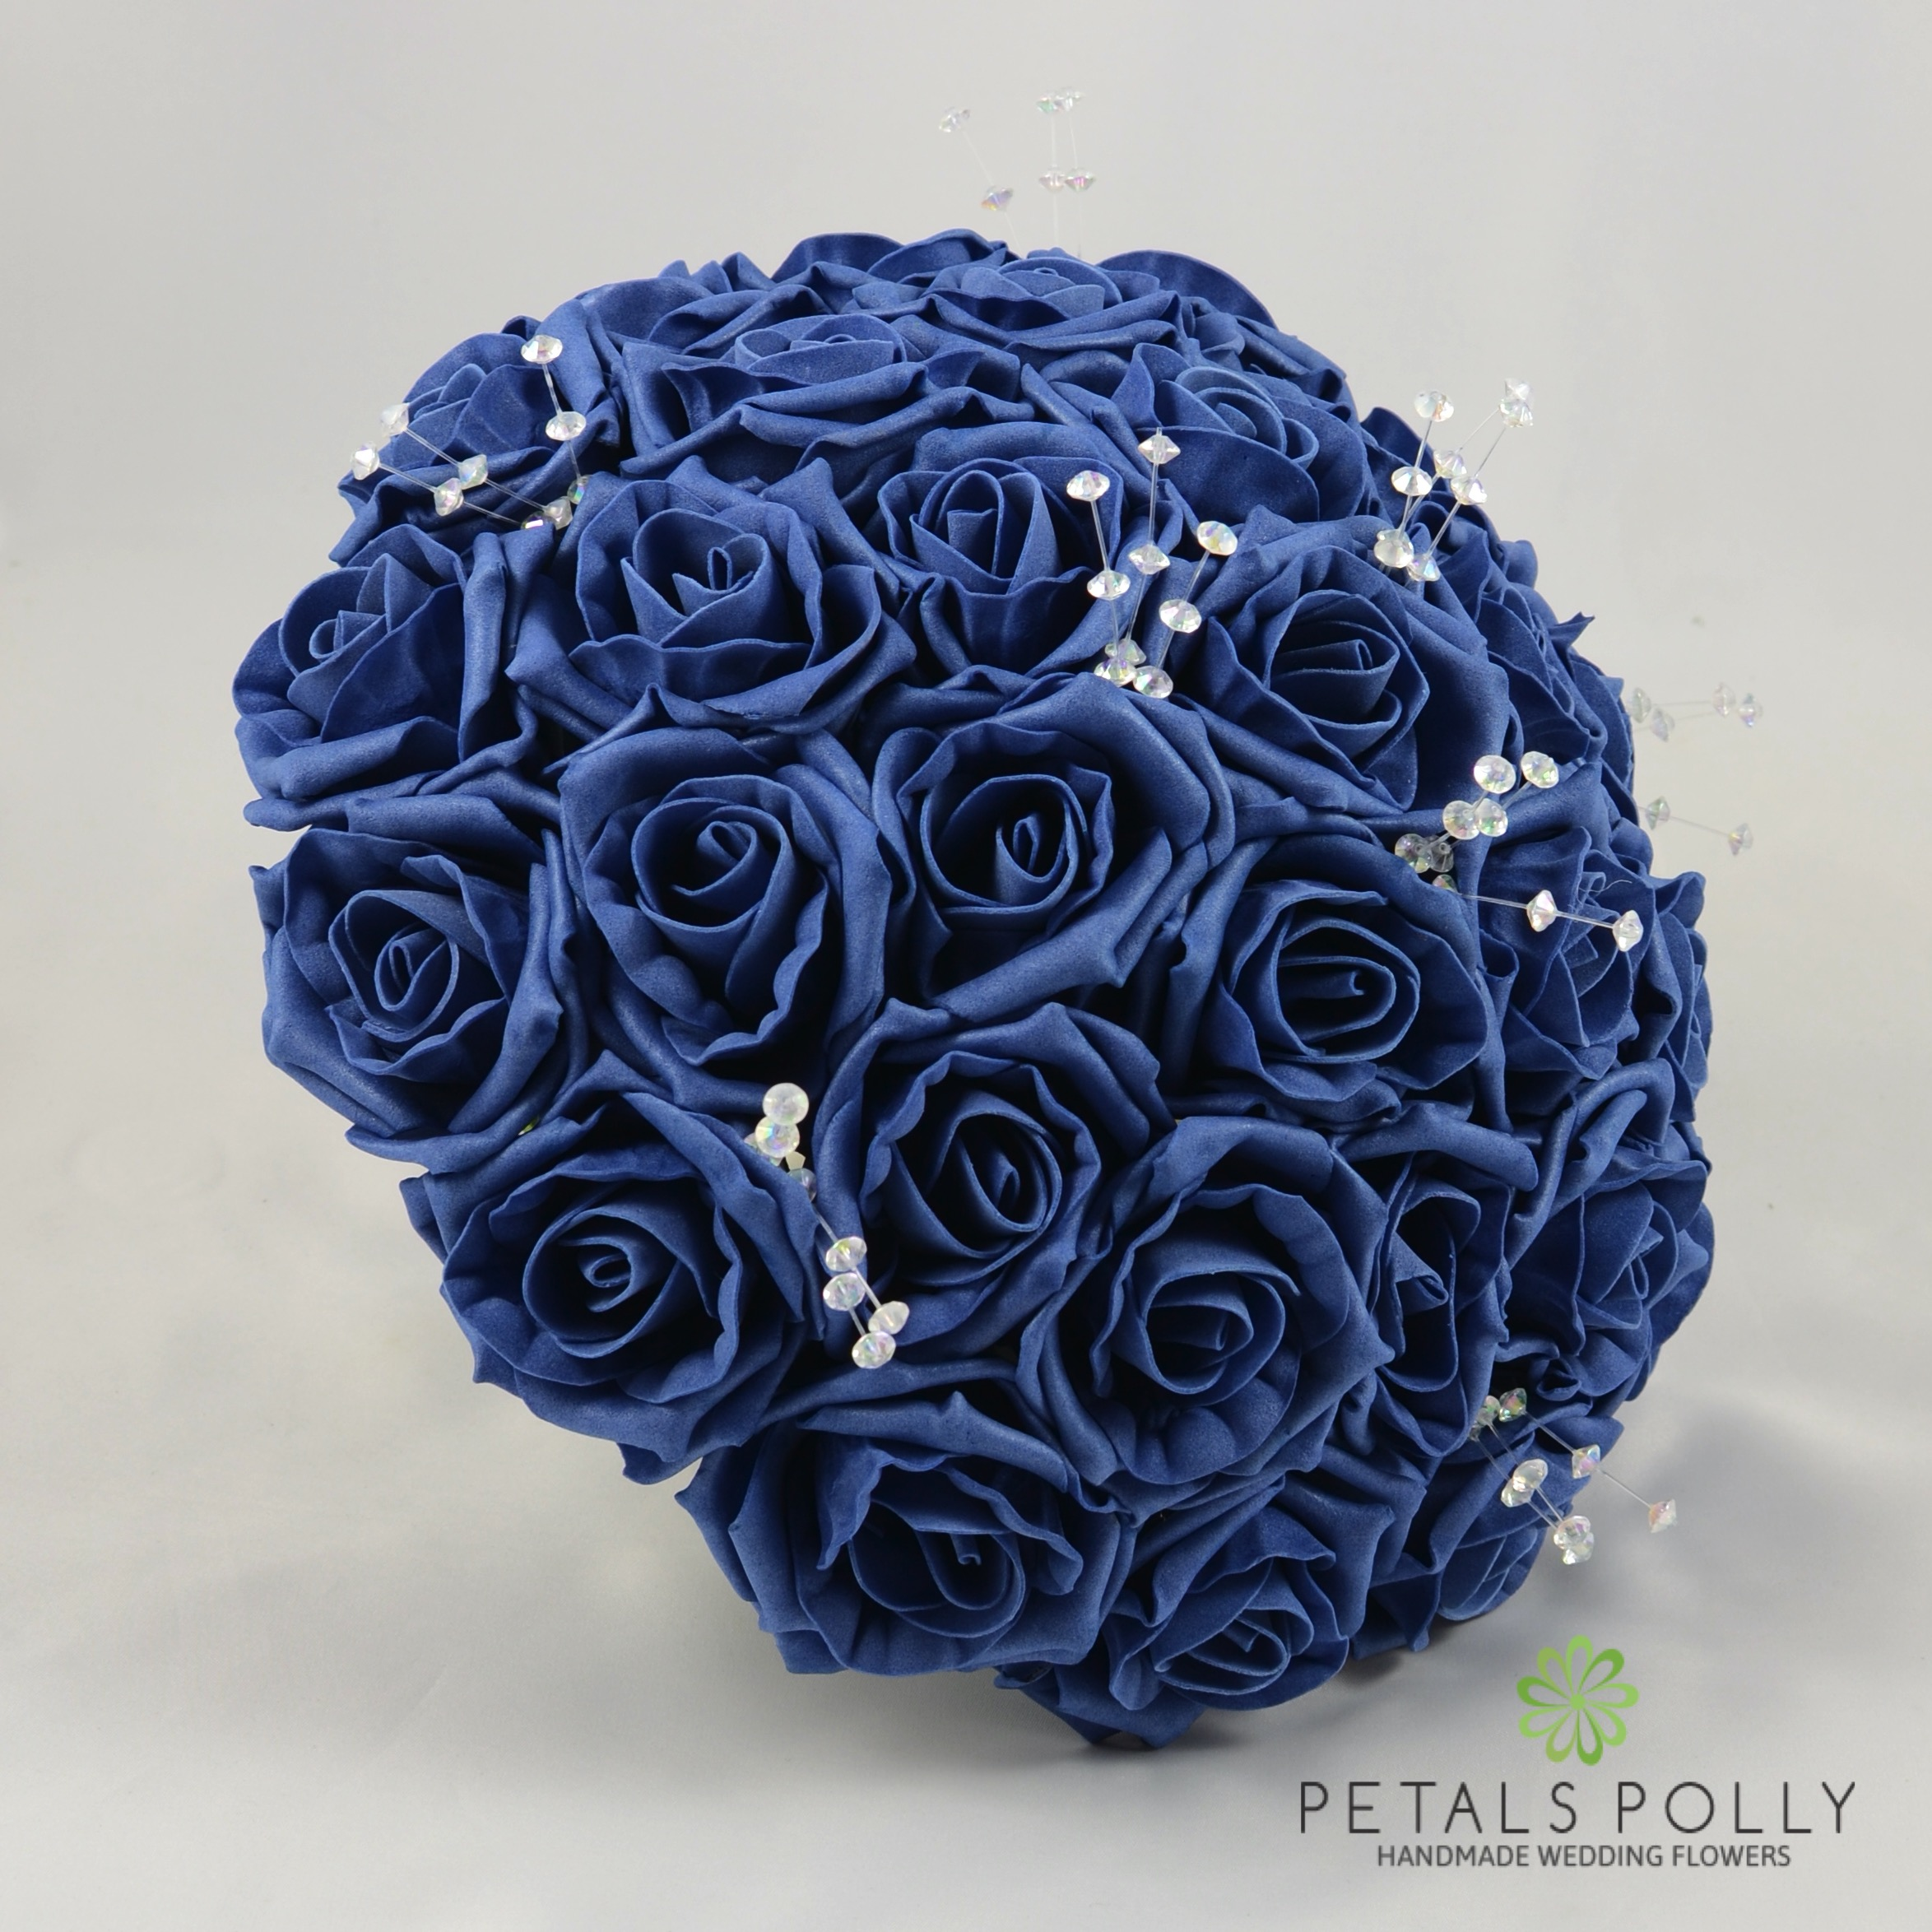 choose blue roses wedding bouquets for your wedding 2 - Choose Blue Roses Wedding Bouquets for Your Wedding